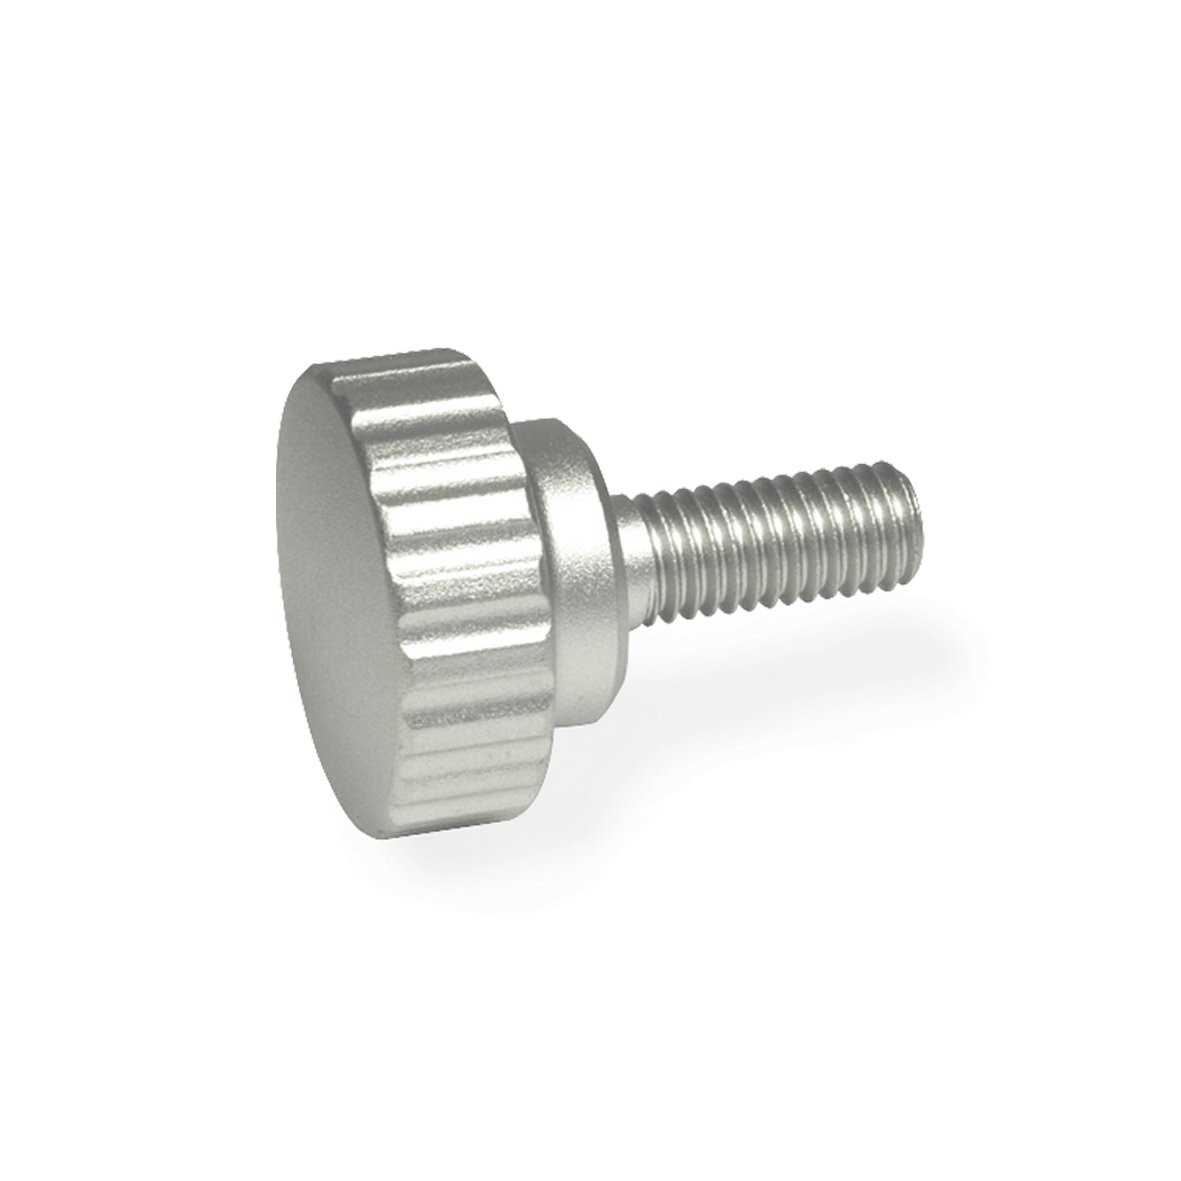 JW Winco Stainless Steel 304 Screw, Knurled, Threaded Stud, M6 x 1.0 Thread Size x 20mm Thread Length, 24mm Head Diameter (Pack of 1) 535-24-M6-20-MT